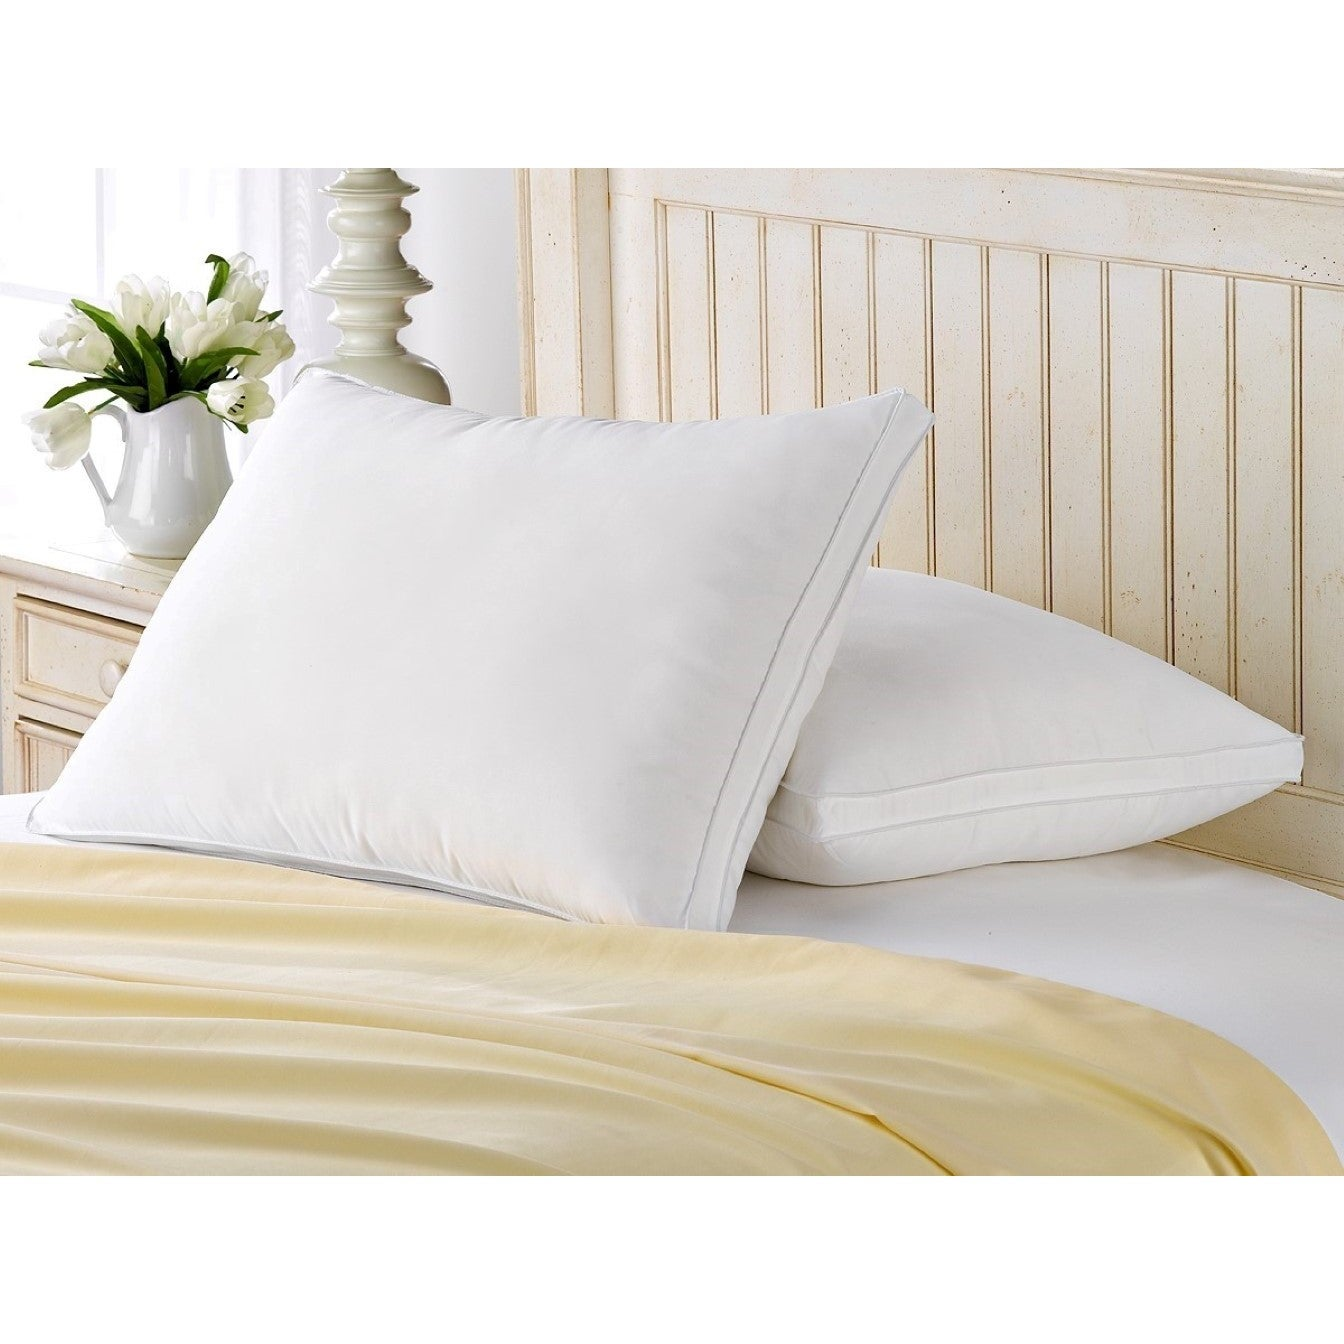 quality x canadian deluxe size king down pillows luxury goose pillow products